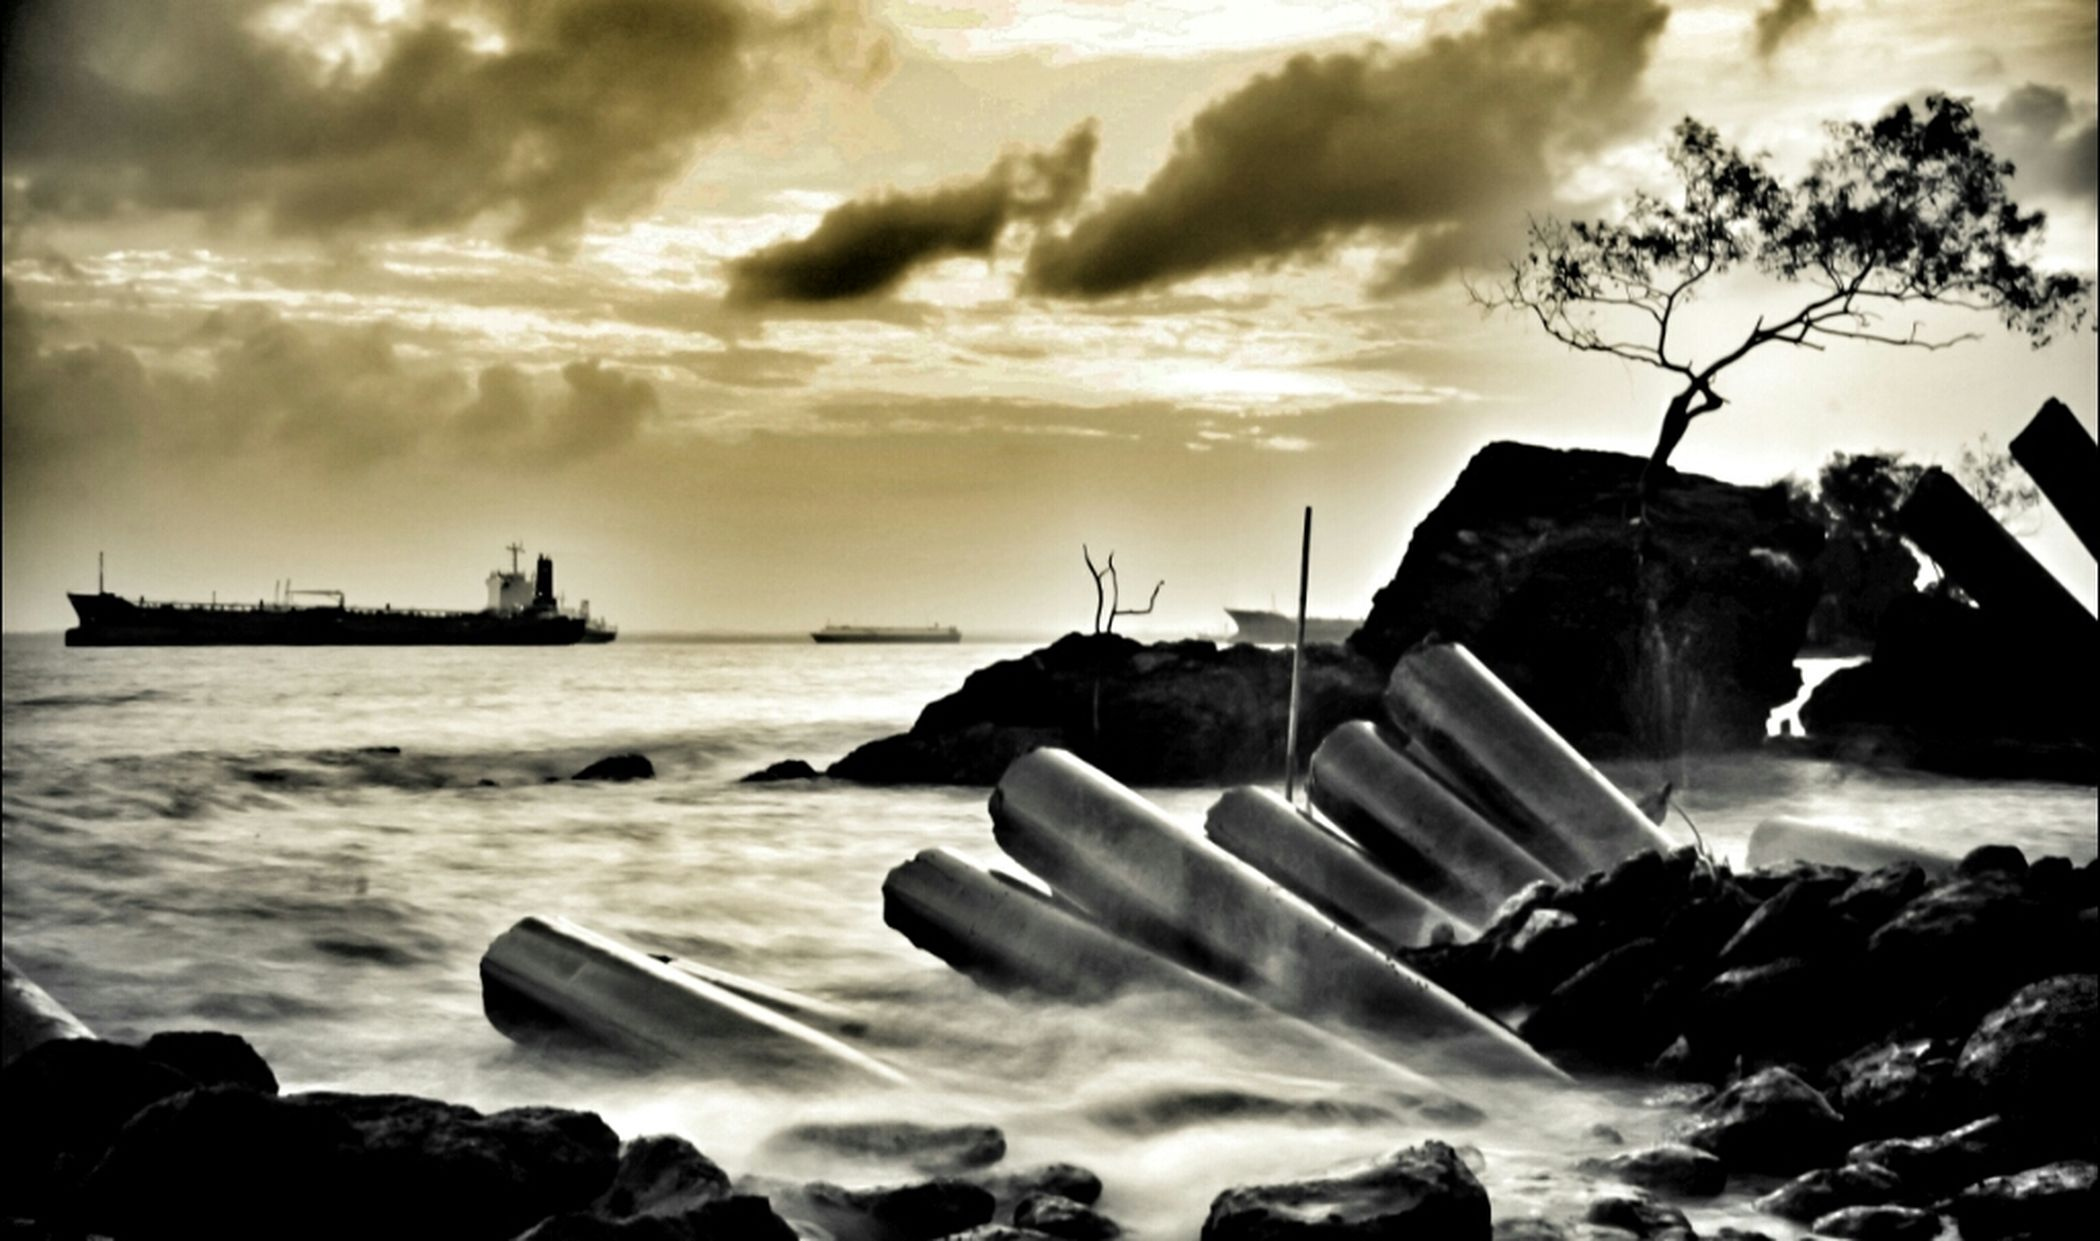 Landscape BlacKeys B+W Film HDR Panorama Sepia Long Exposure Stunning #sunset #sun #clouds #skylovers #sky #nature #beautifulinnature #naturalbeauty #photography #landscape Pantai Jelajah_nusantara Siksa Kamera